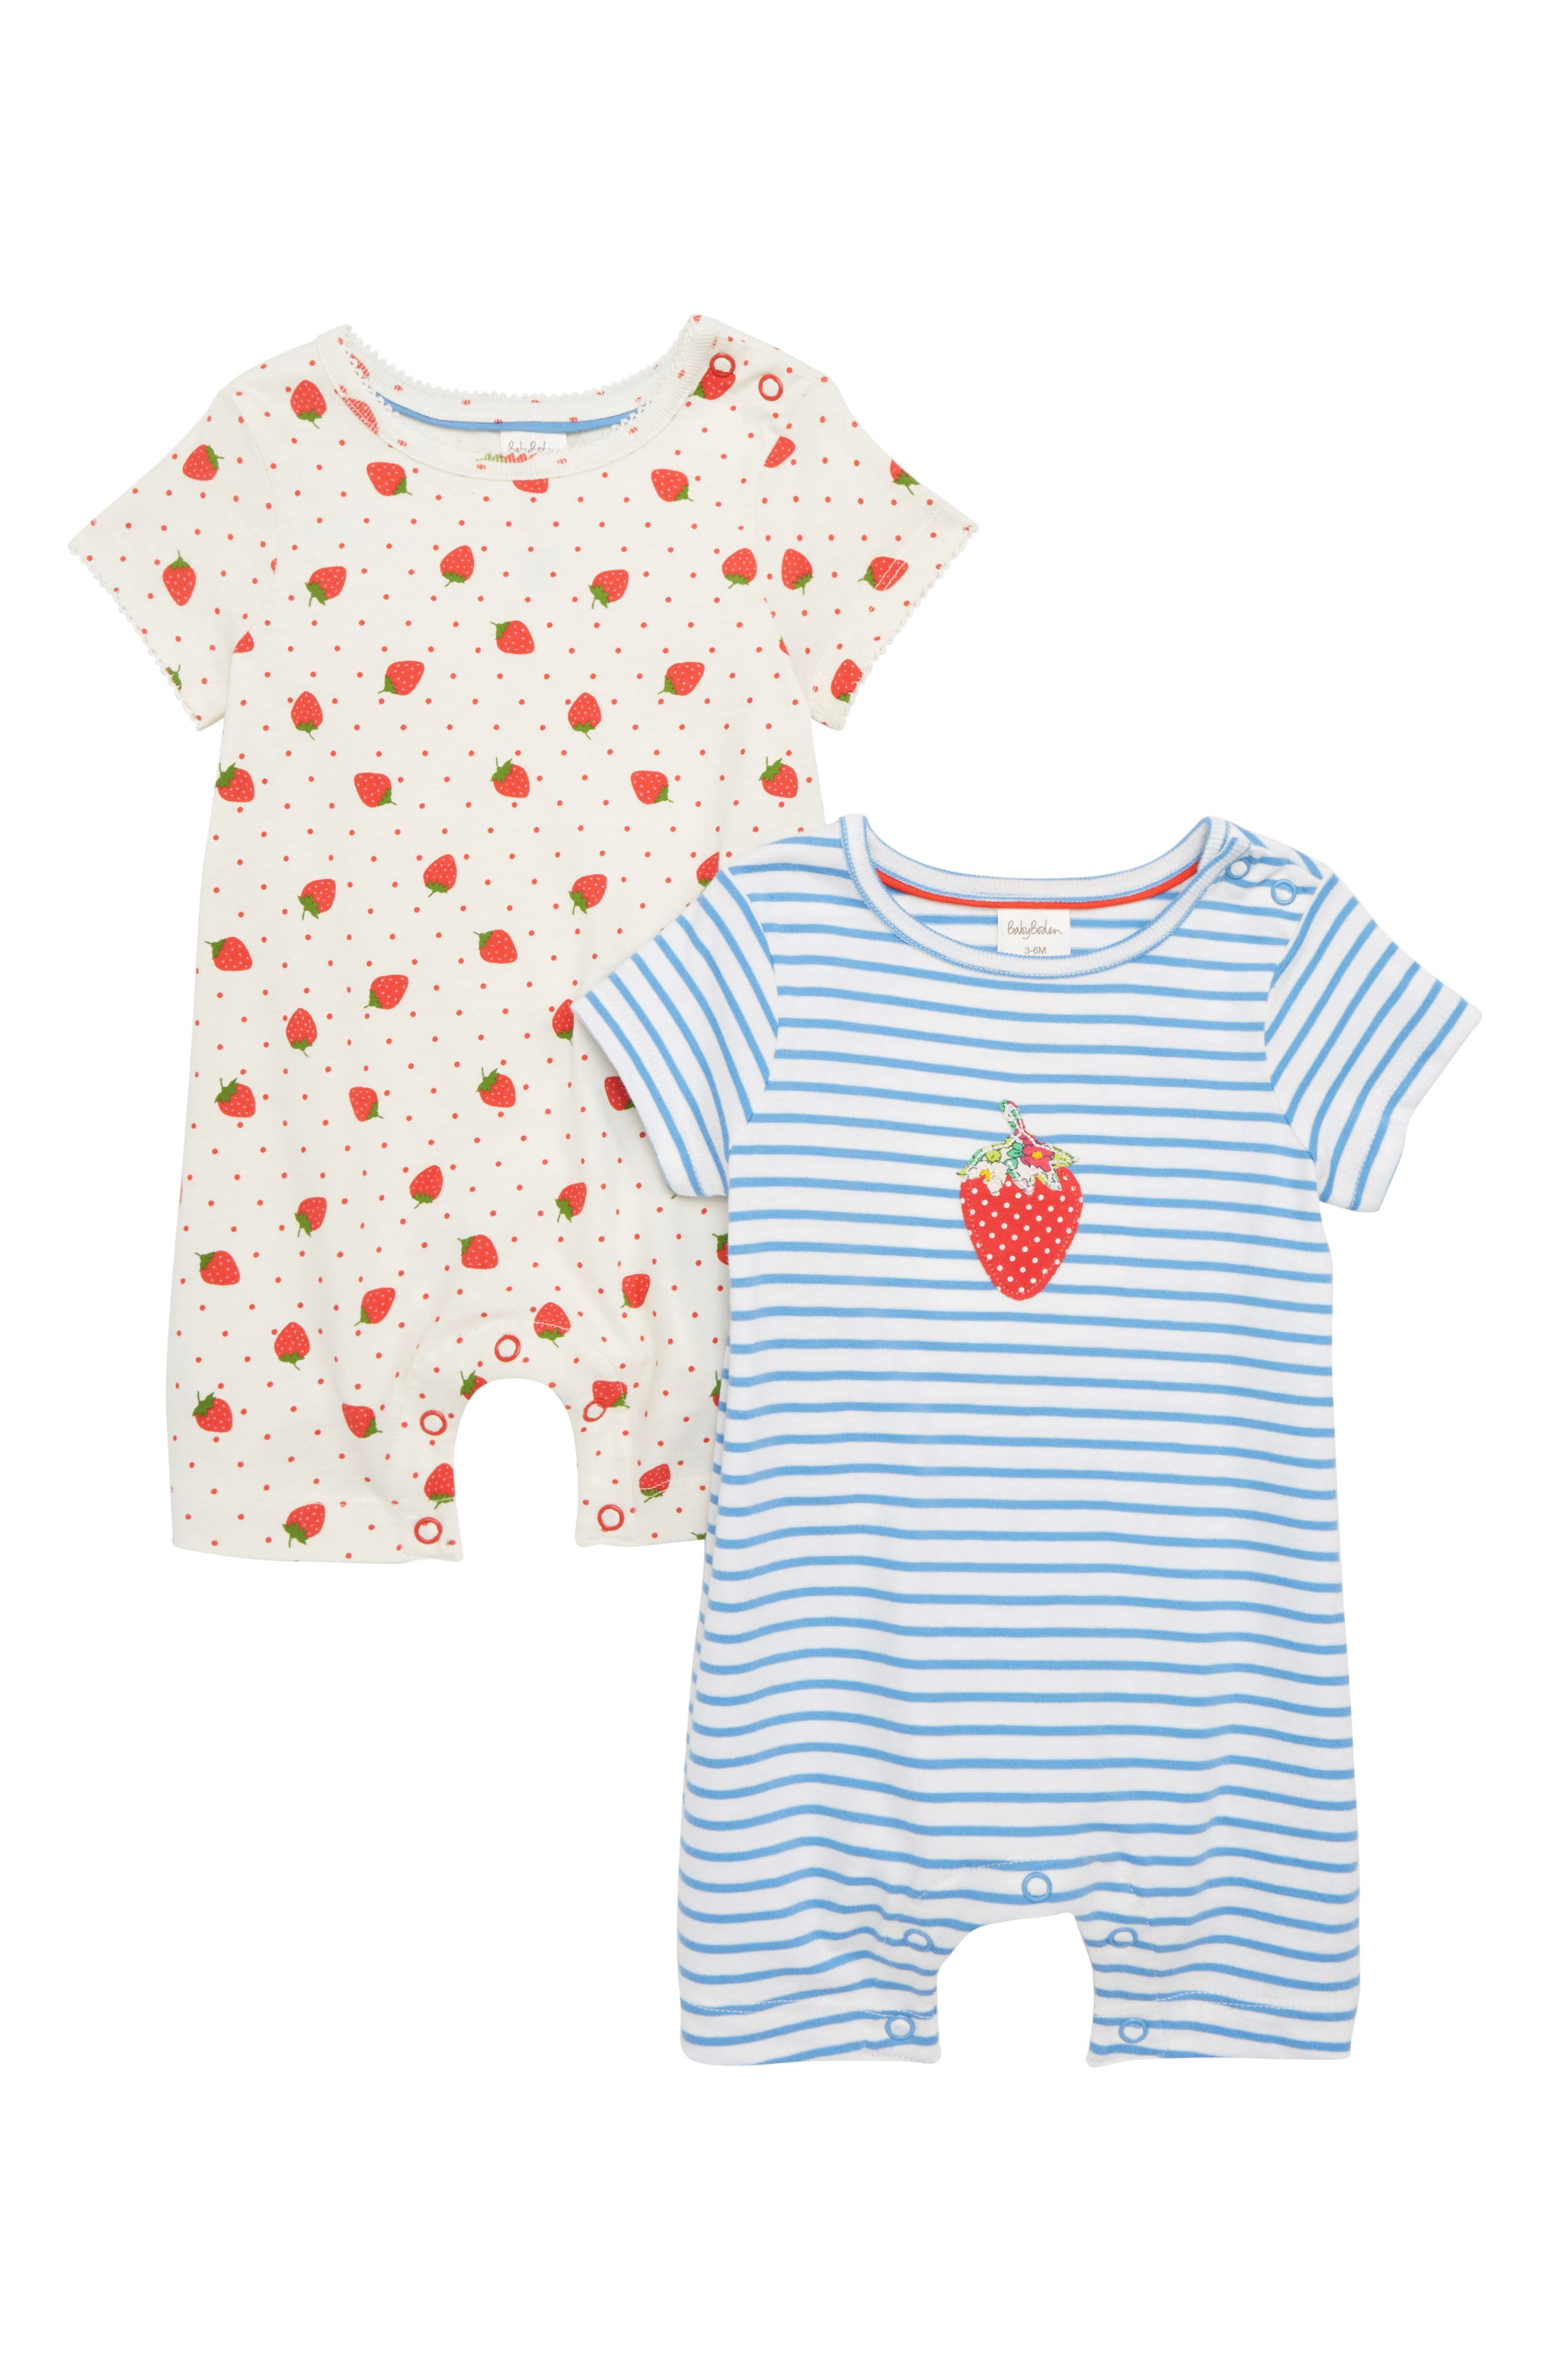 Summer 2-Pack Rompers,                         Main,                         color, 904